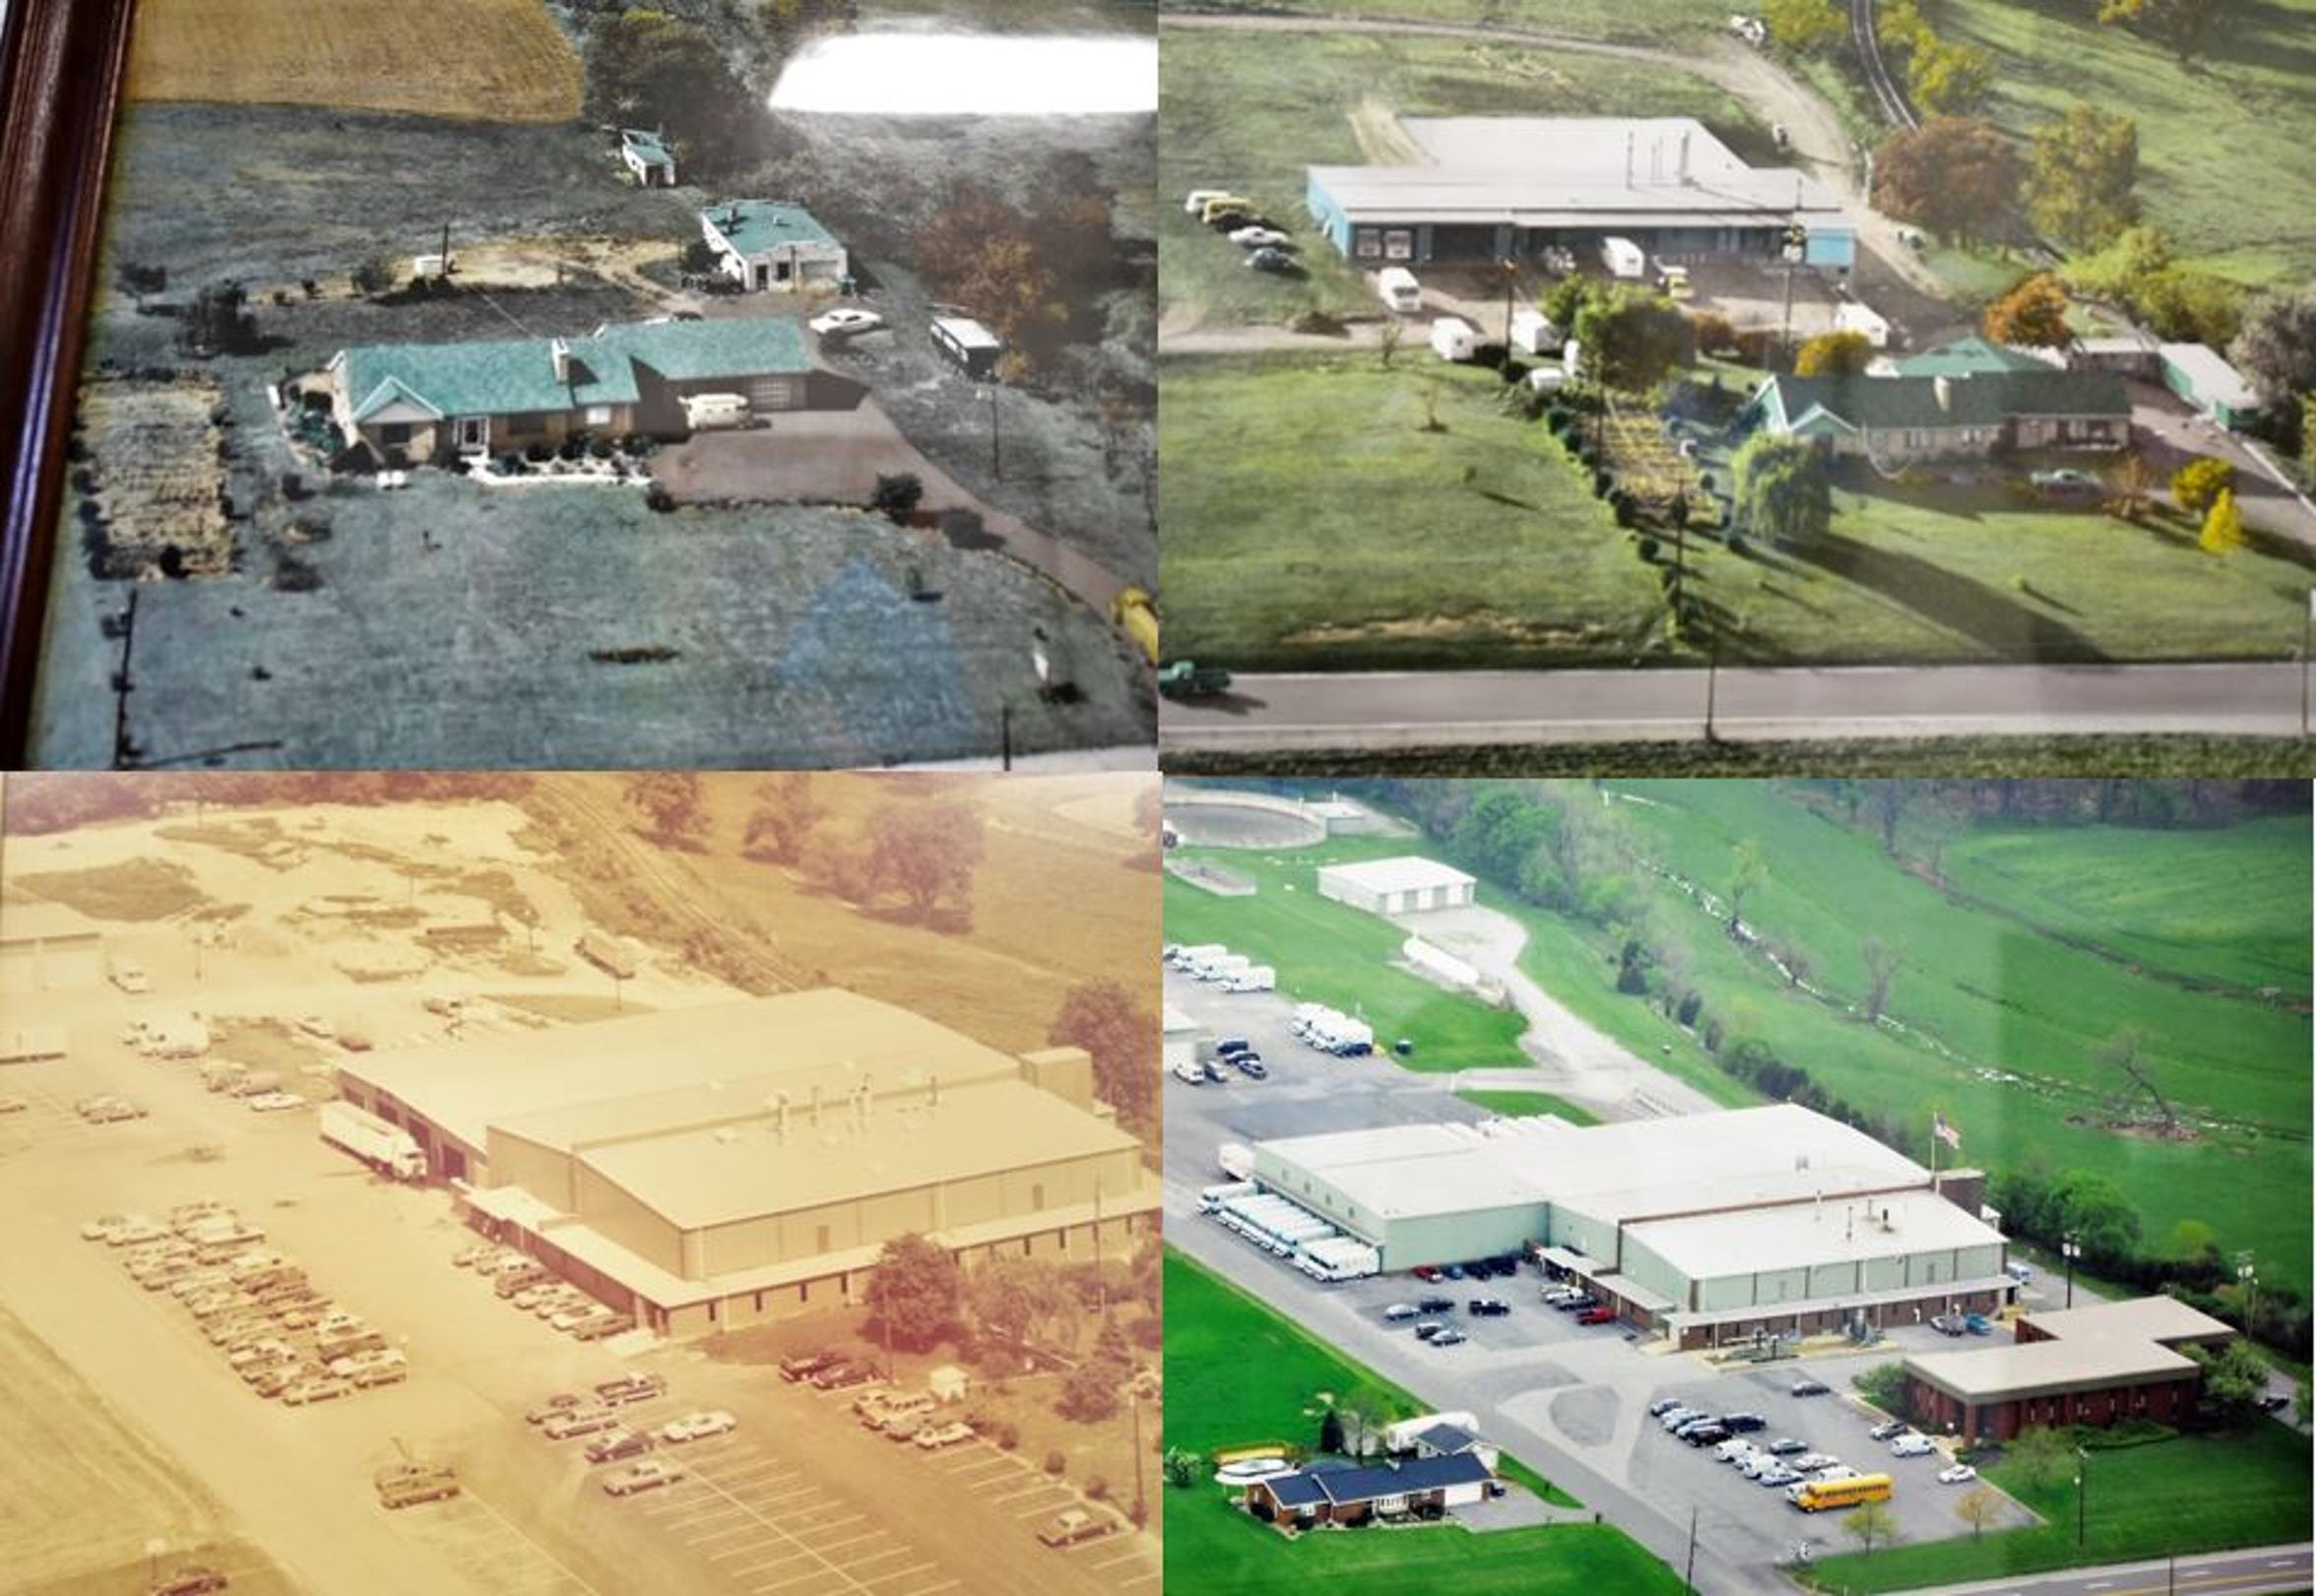 Four aerial photos showing the Gibble's property over the years hang on the walls in the plant at 6647 Molly Pitcher Highway, Chambersburg. The office building, which Gibble's has not used in years, is built on the same spot that the house stood on. In fact, the front wall of the house still stands within the front wall of the office building.